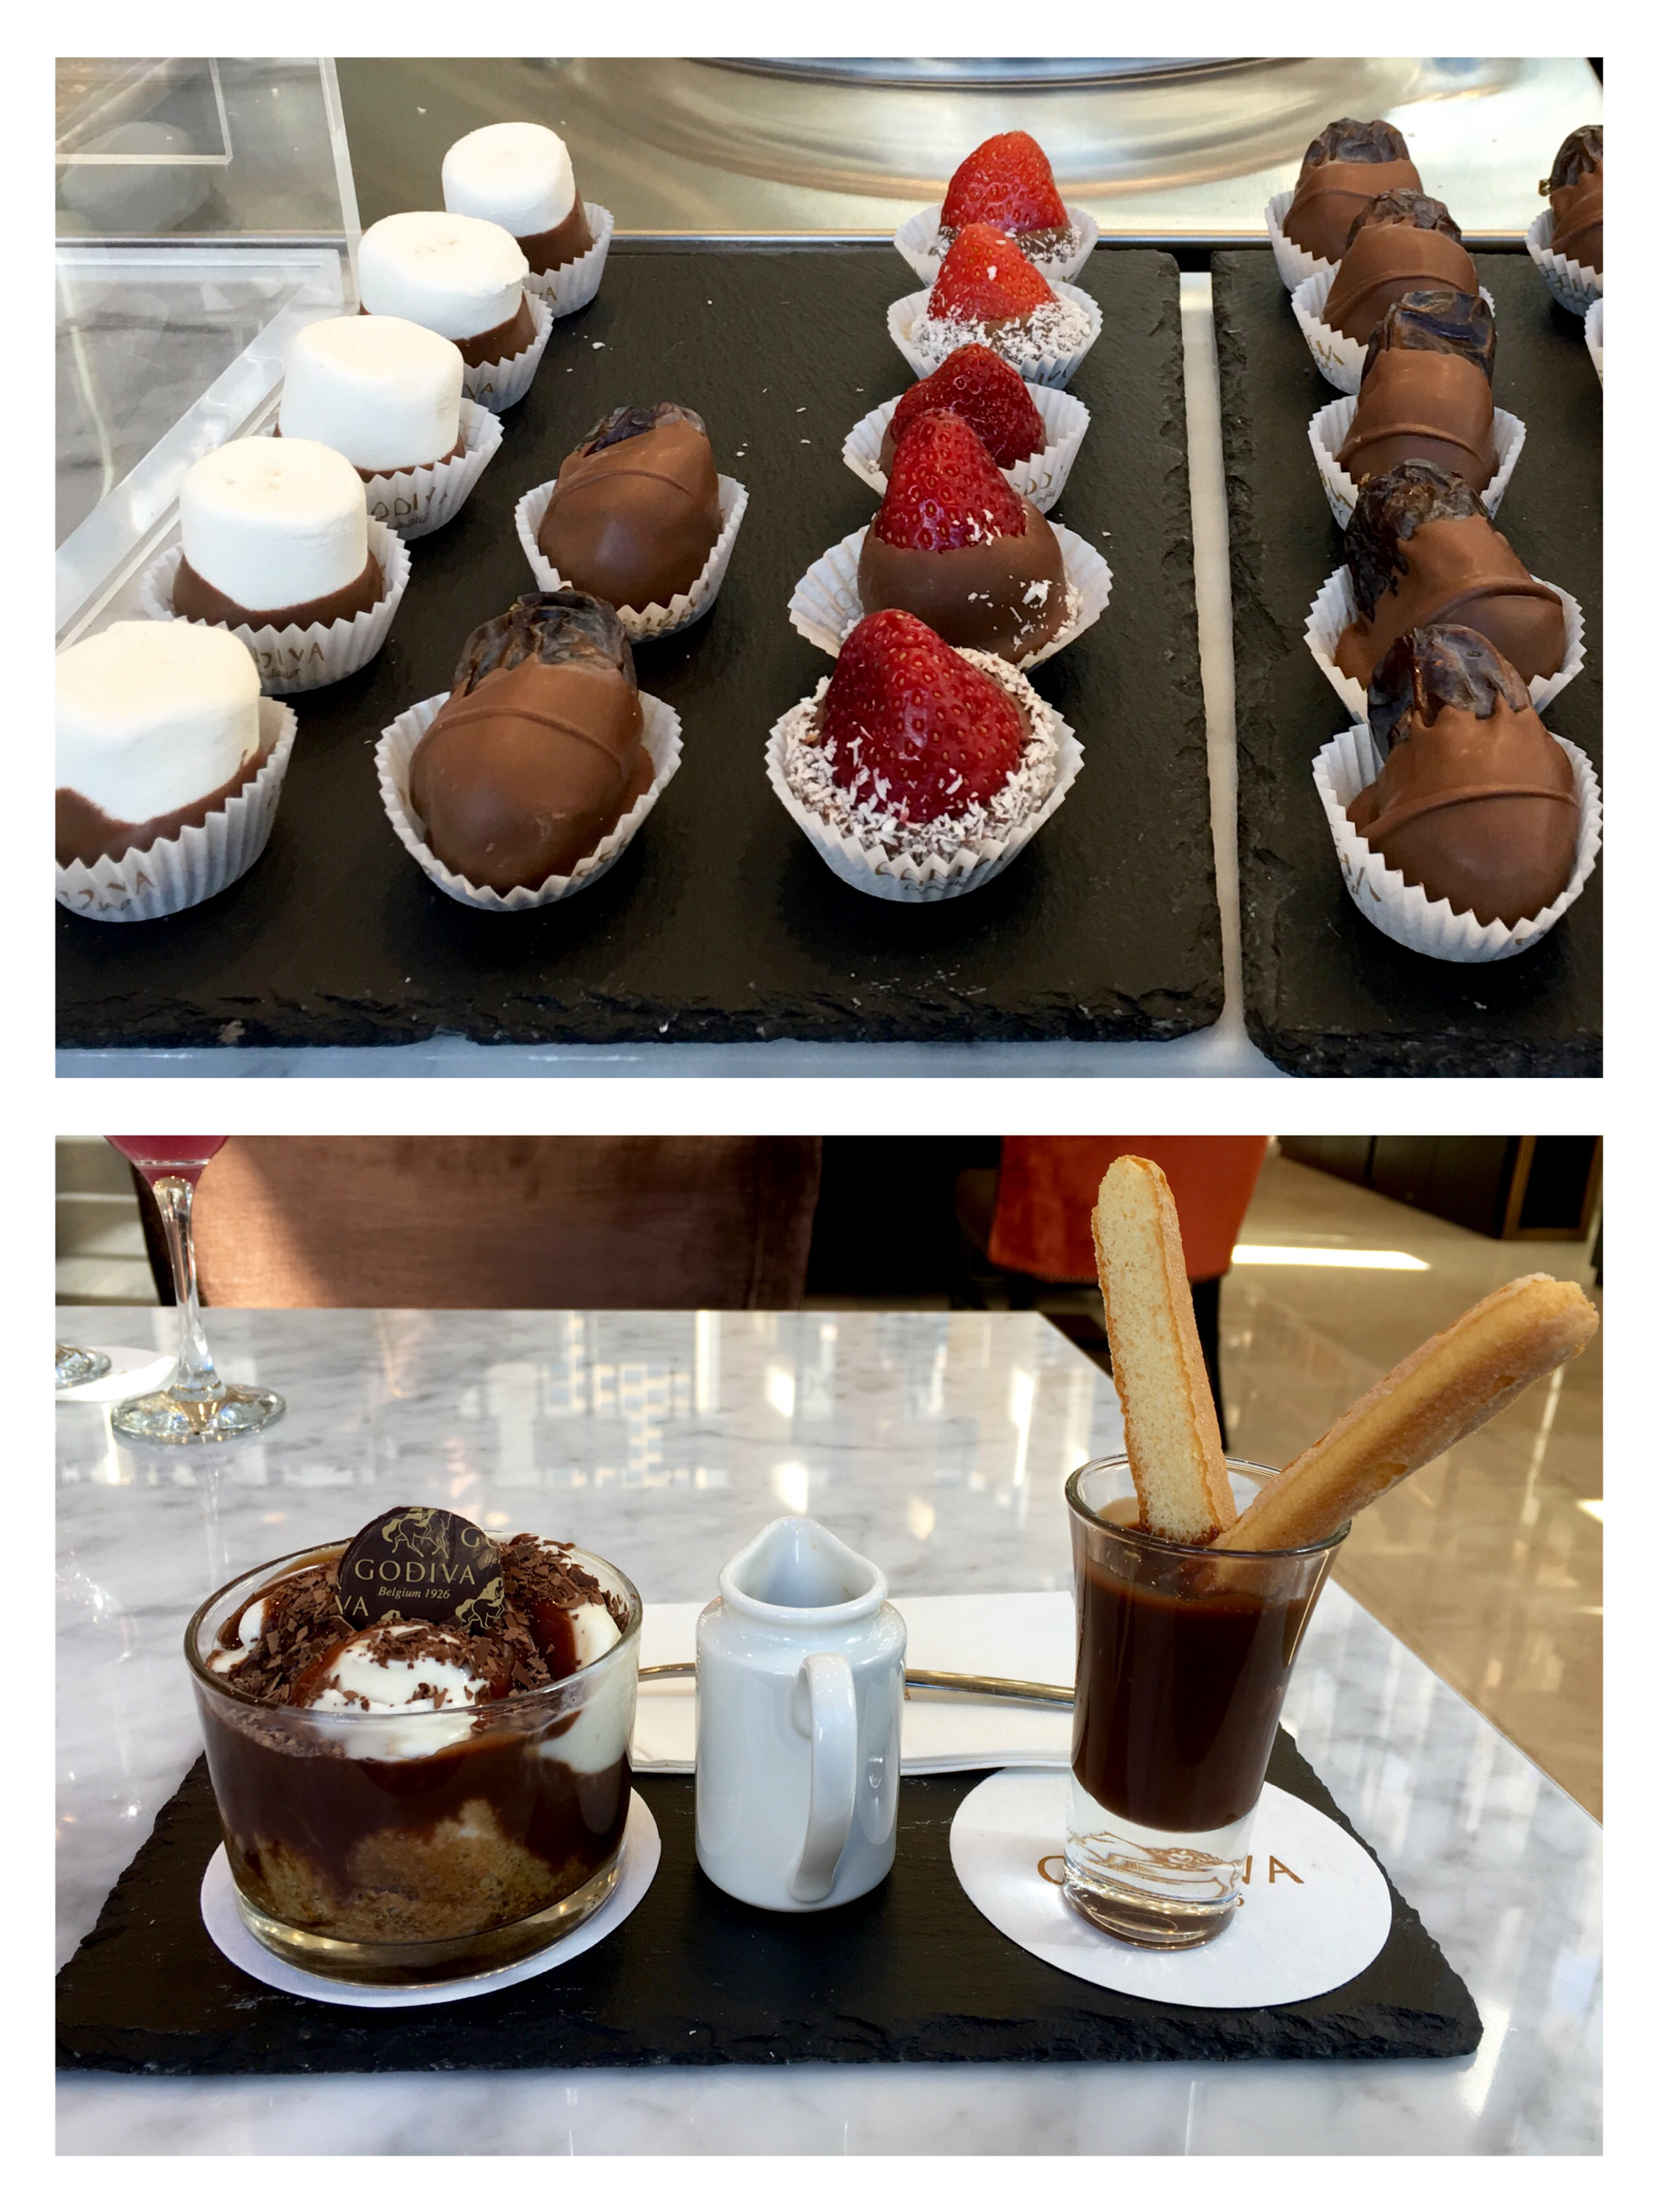 Sweet Celebration at Godiva – megsblogged.com